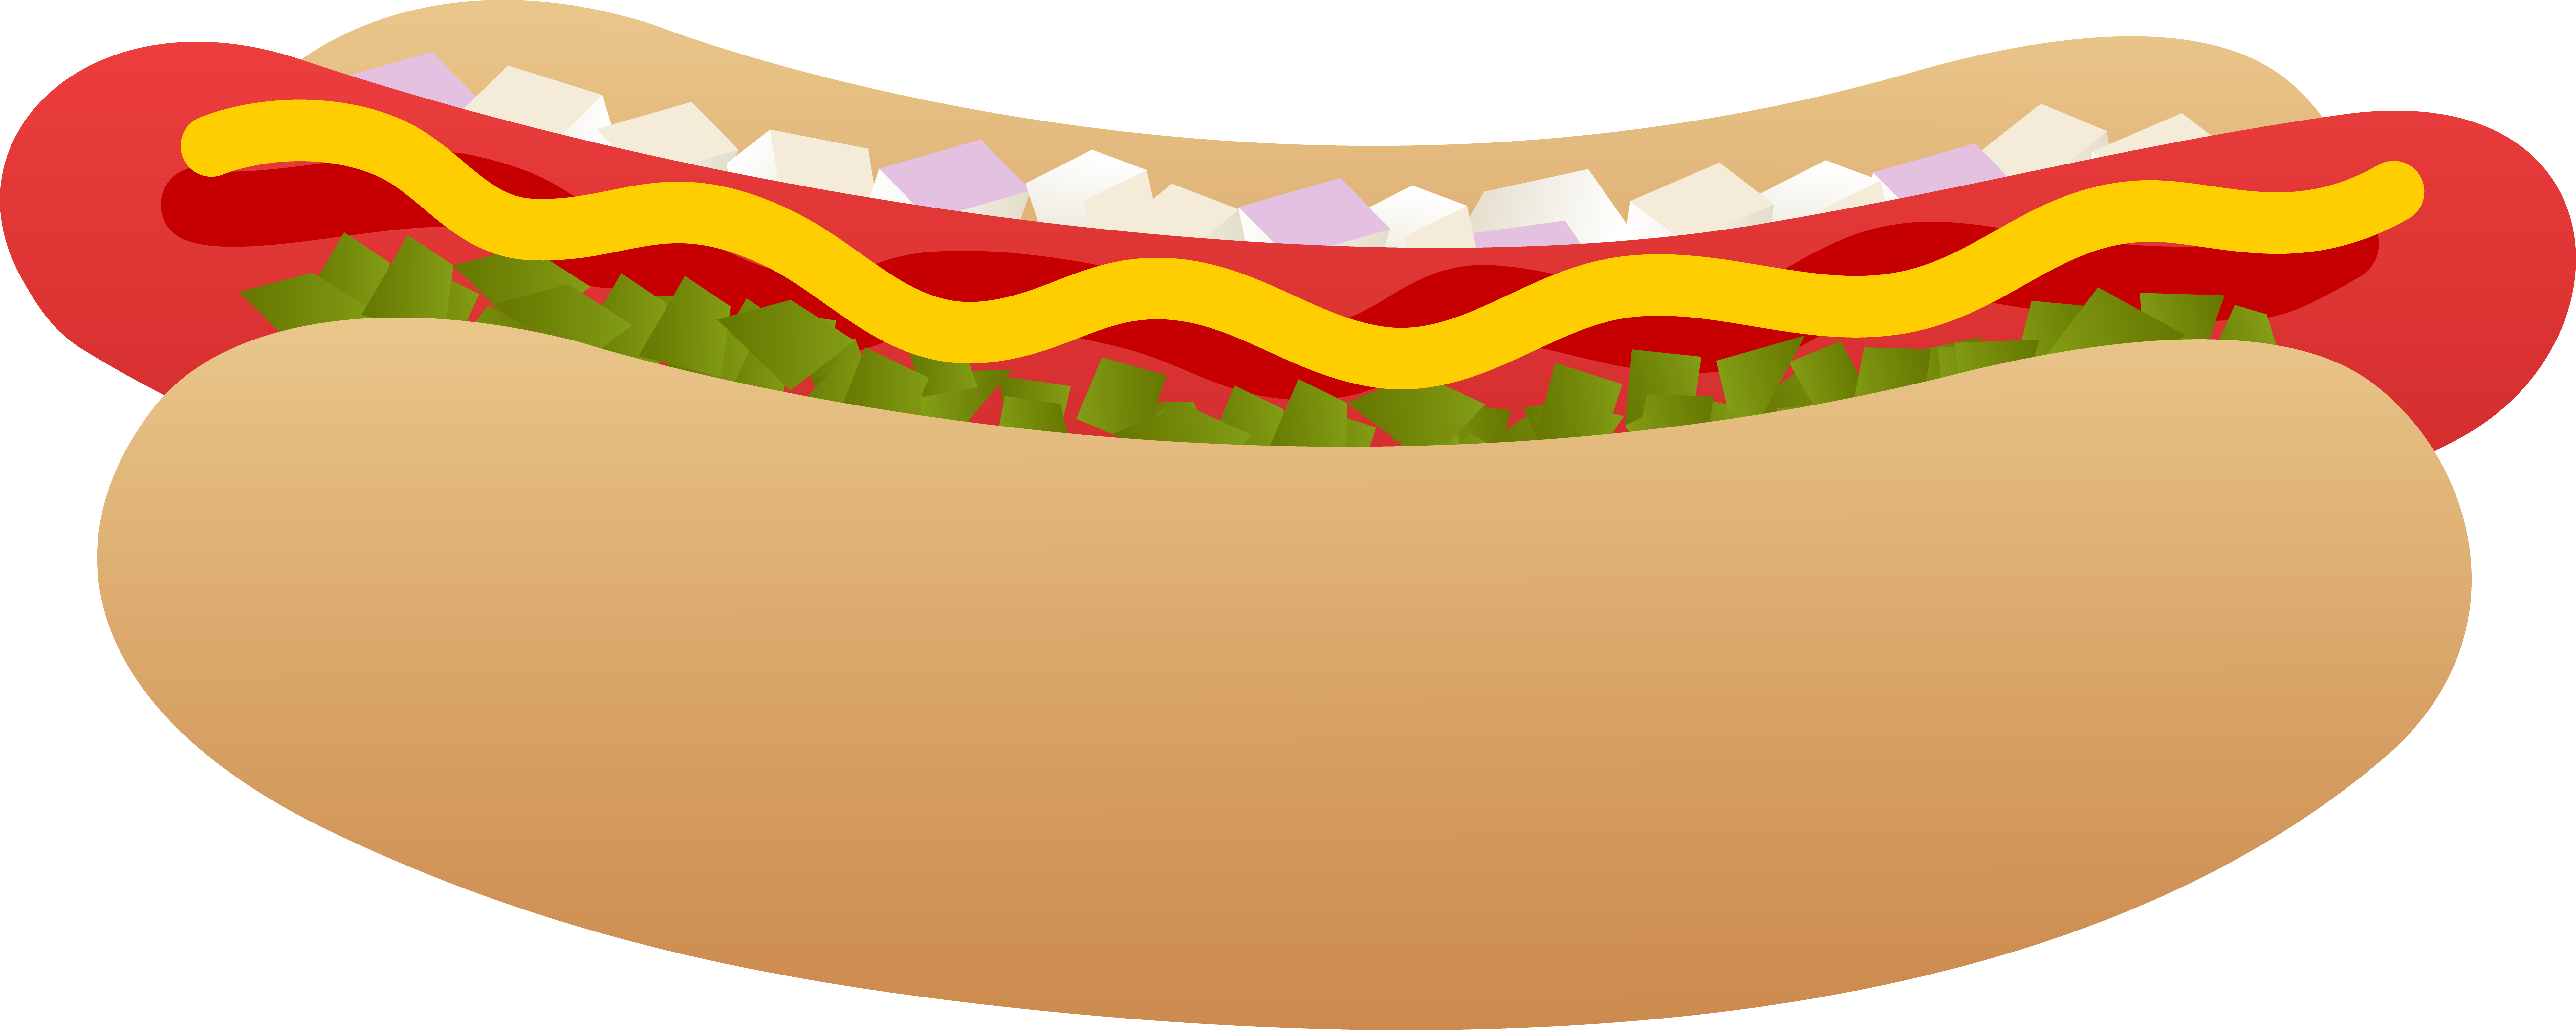 24 pictures of hotdogs free cliparts that you can download to you ...